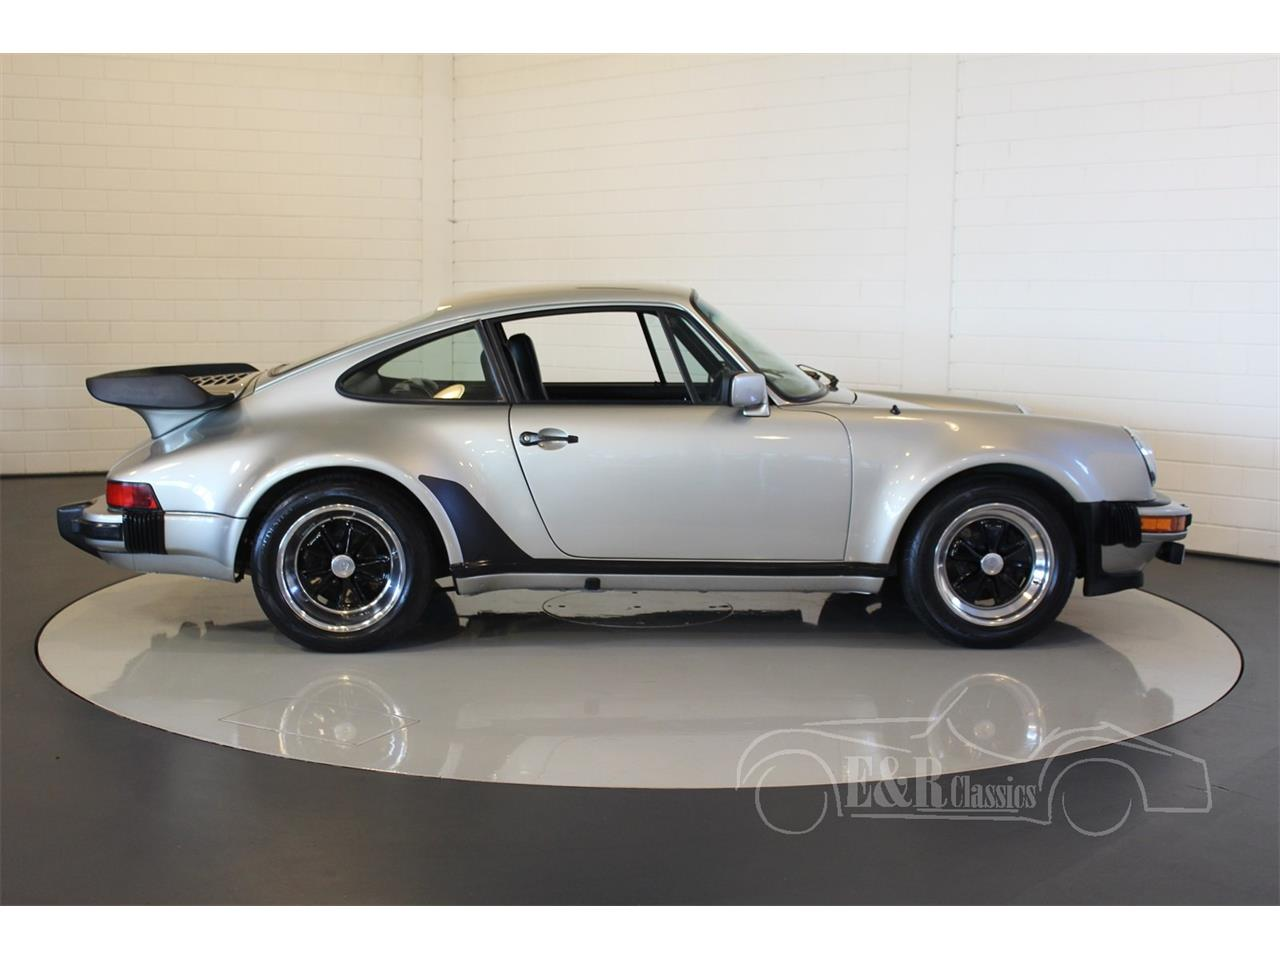 Large Picture of '83 Porsche 930 Turbo located in Waalwijk Noord-Brabant - $115,250.00 Offered by E & R Classics - MO99